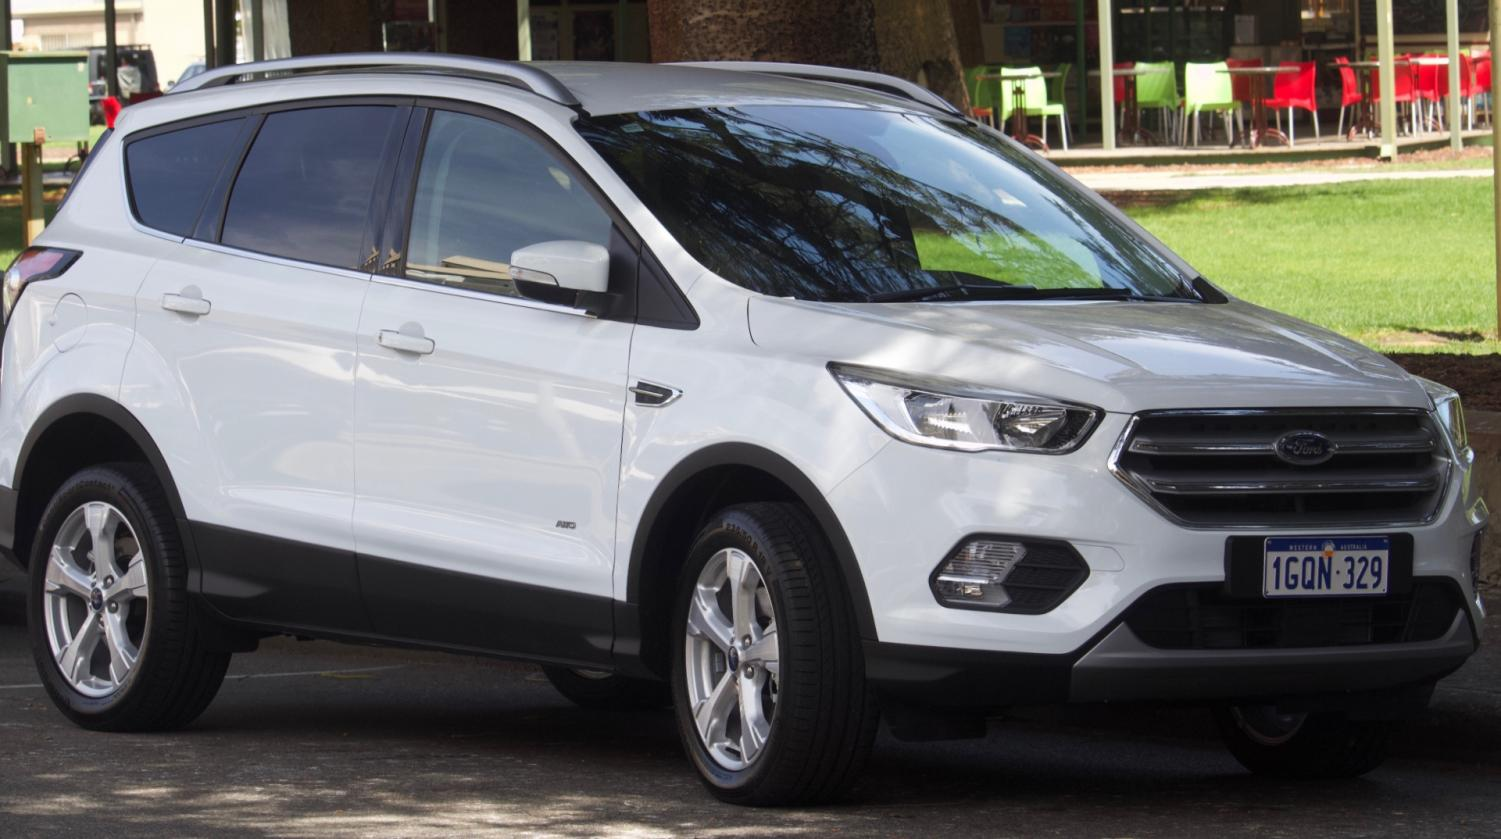 One of the sportiest compact SUVs in 2018, The Ford Escape Titantium is one of the best selling SUVs in the United States.